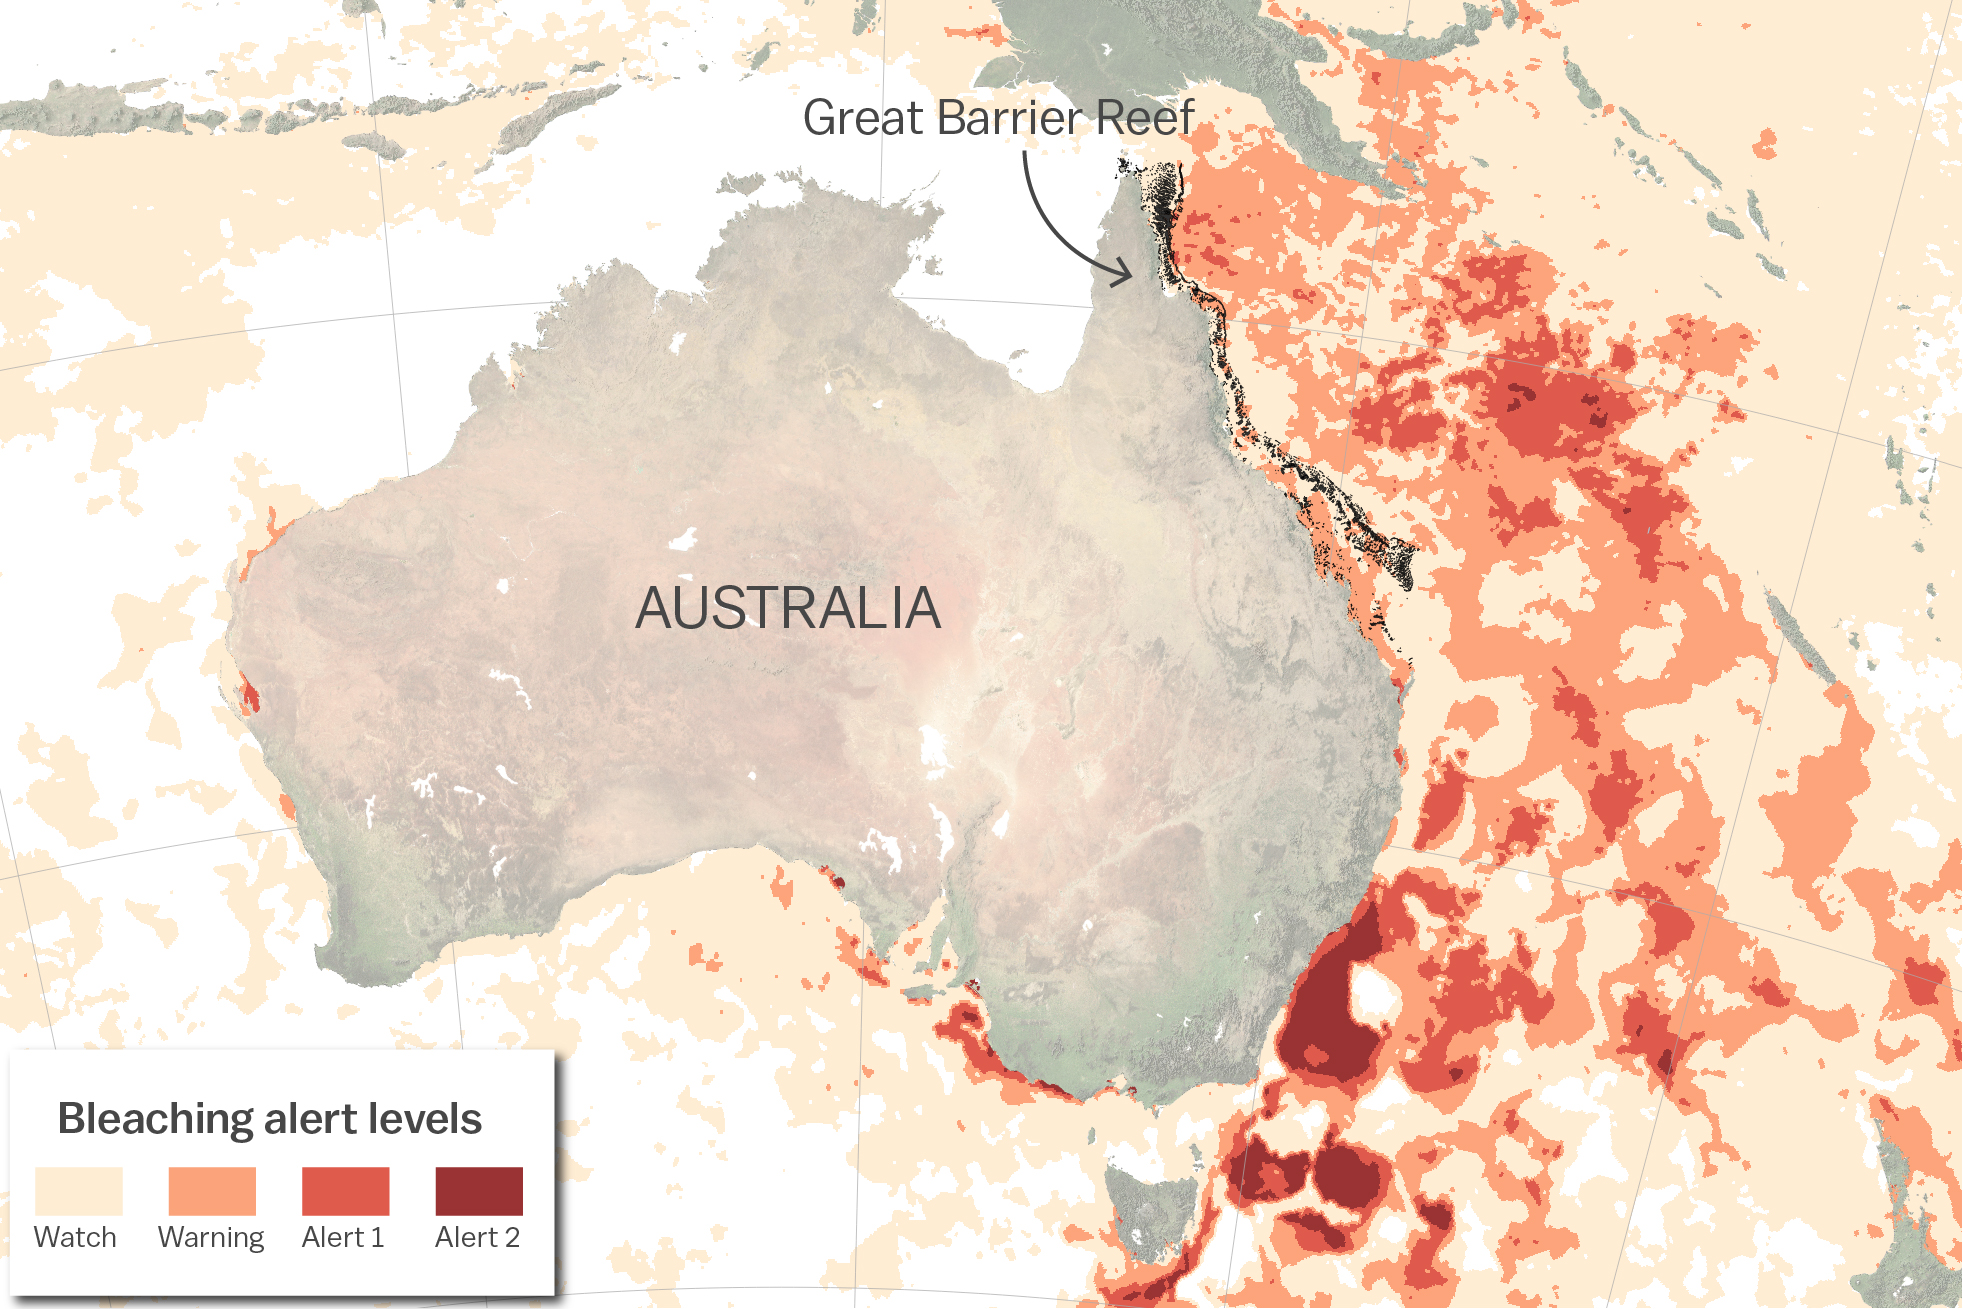 Map of bleaching alerts in February 2017 along the Great Barrier Reef